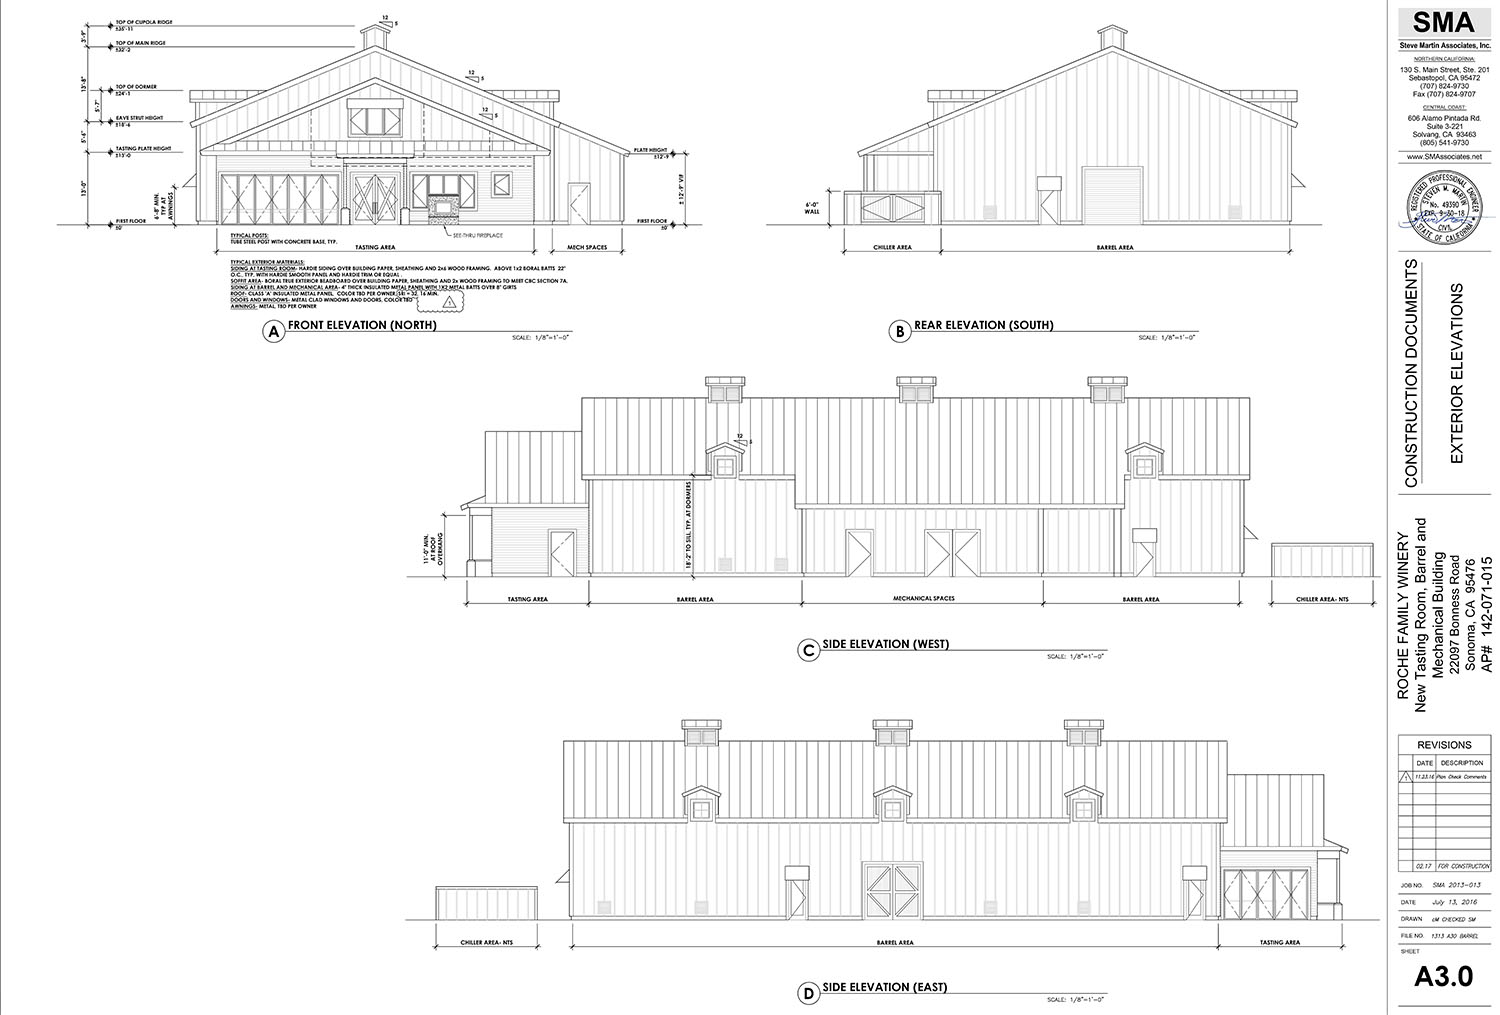 Preliminary plans are for both buildings combined to make up approximately 17,000 square feet in size and to offer a capacity of 30,000 cases to be produced on site annually